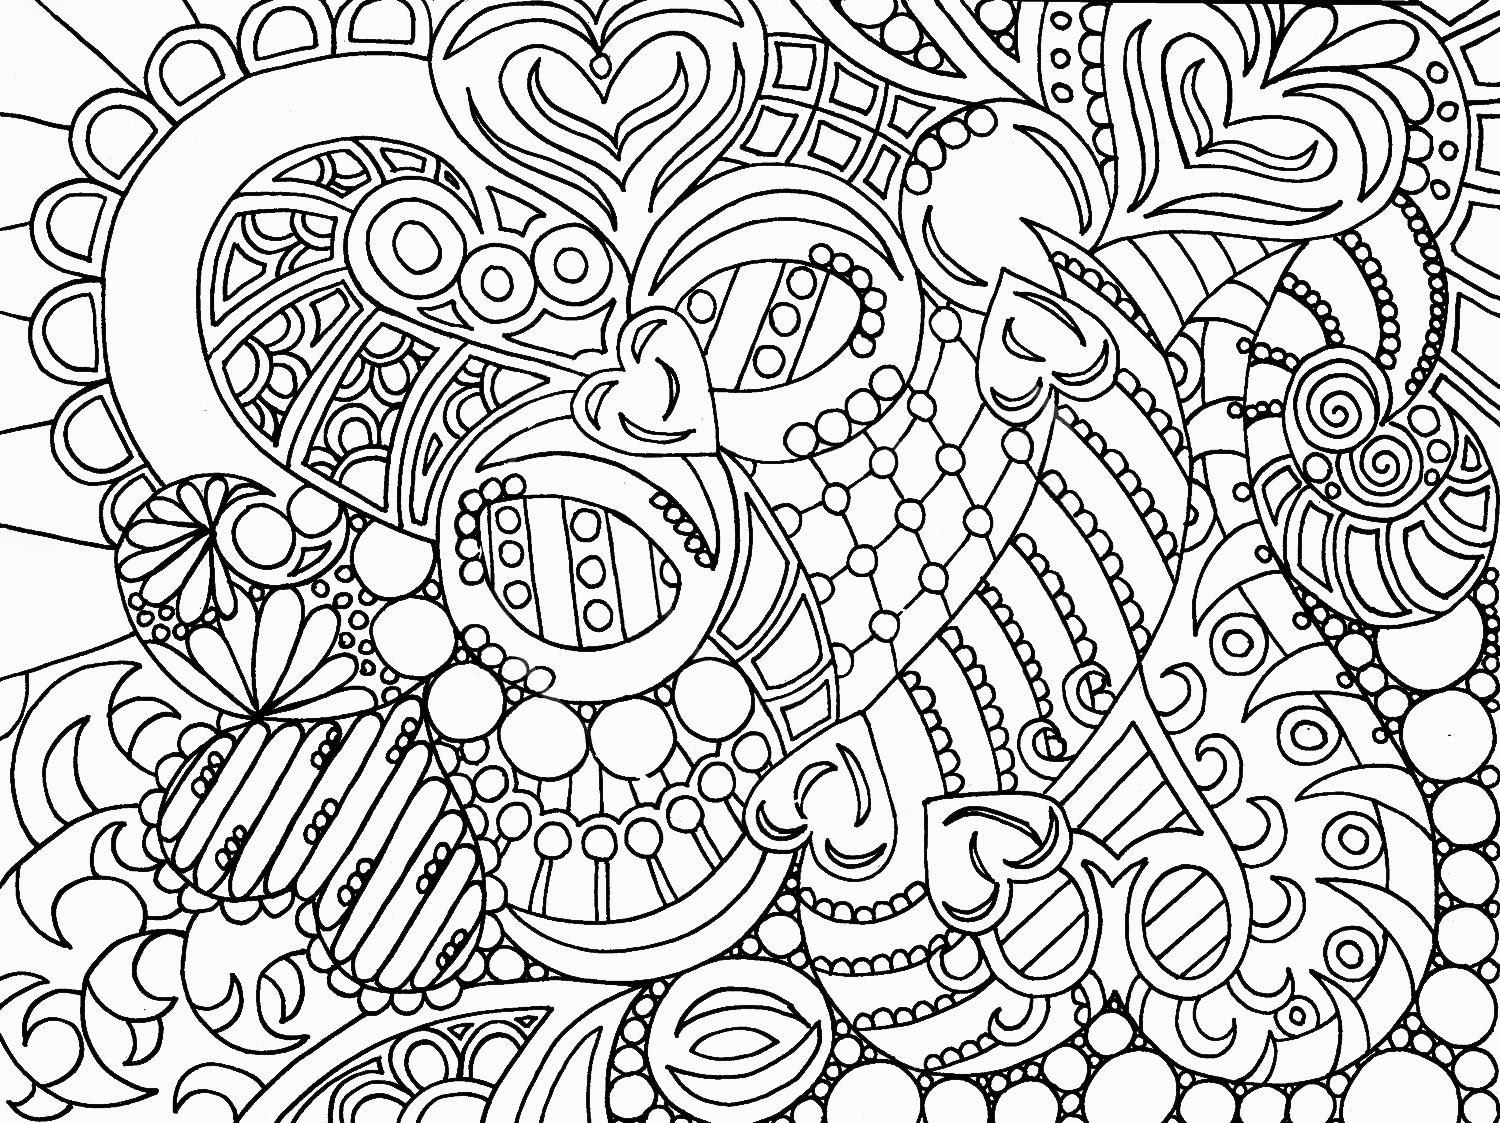 colouring pages on pinterest mandalas coloring pages and flower designs